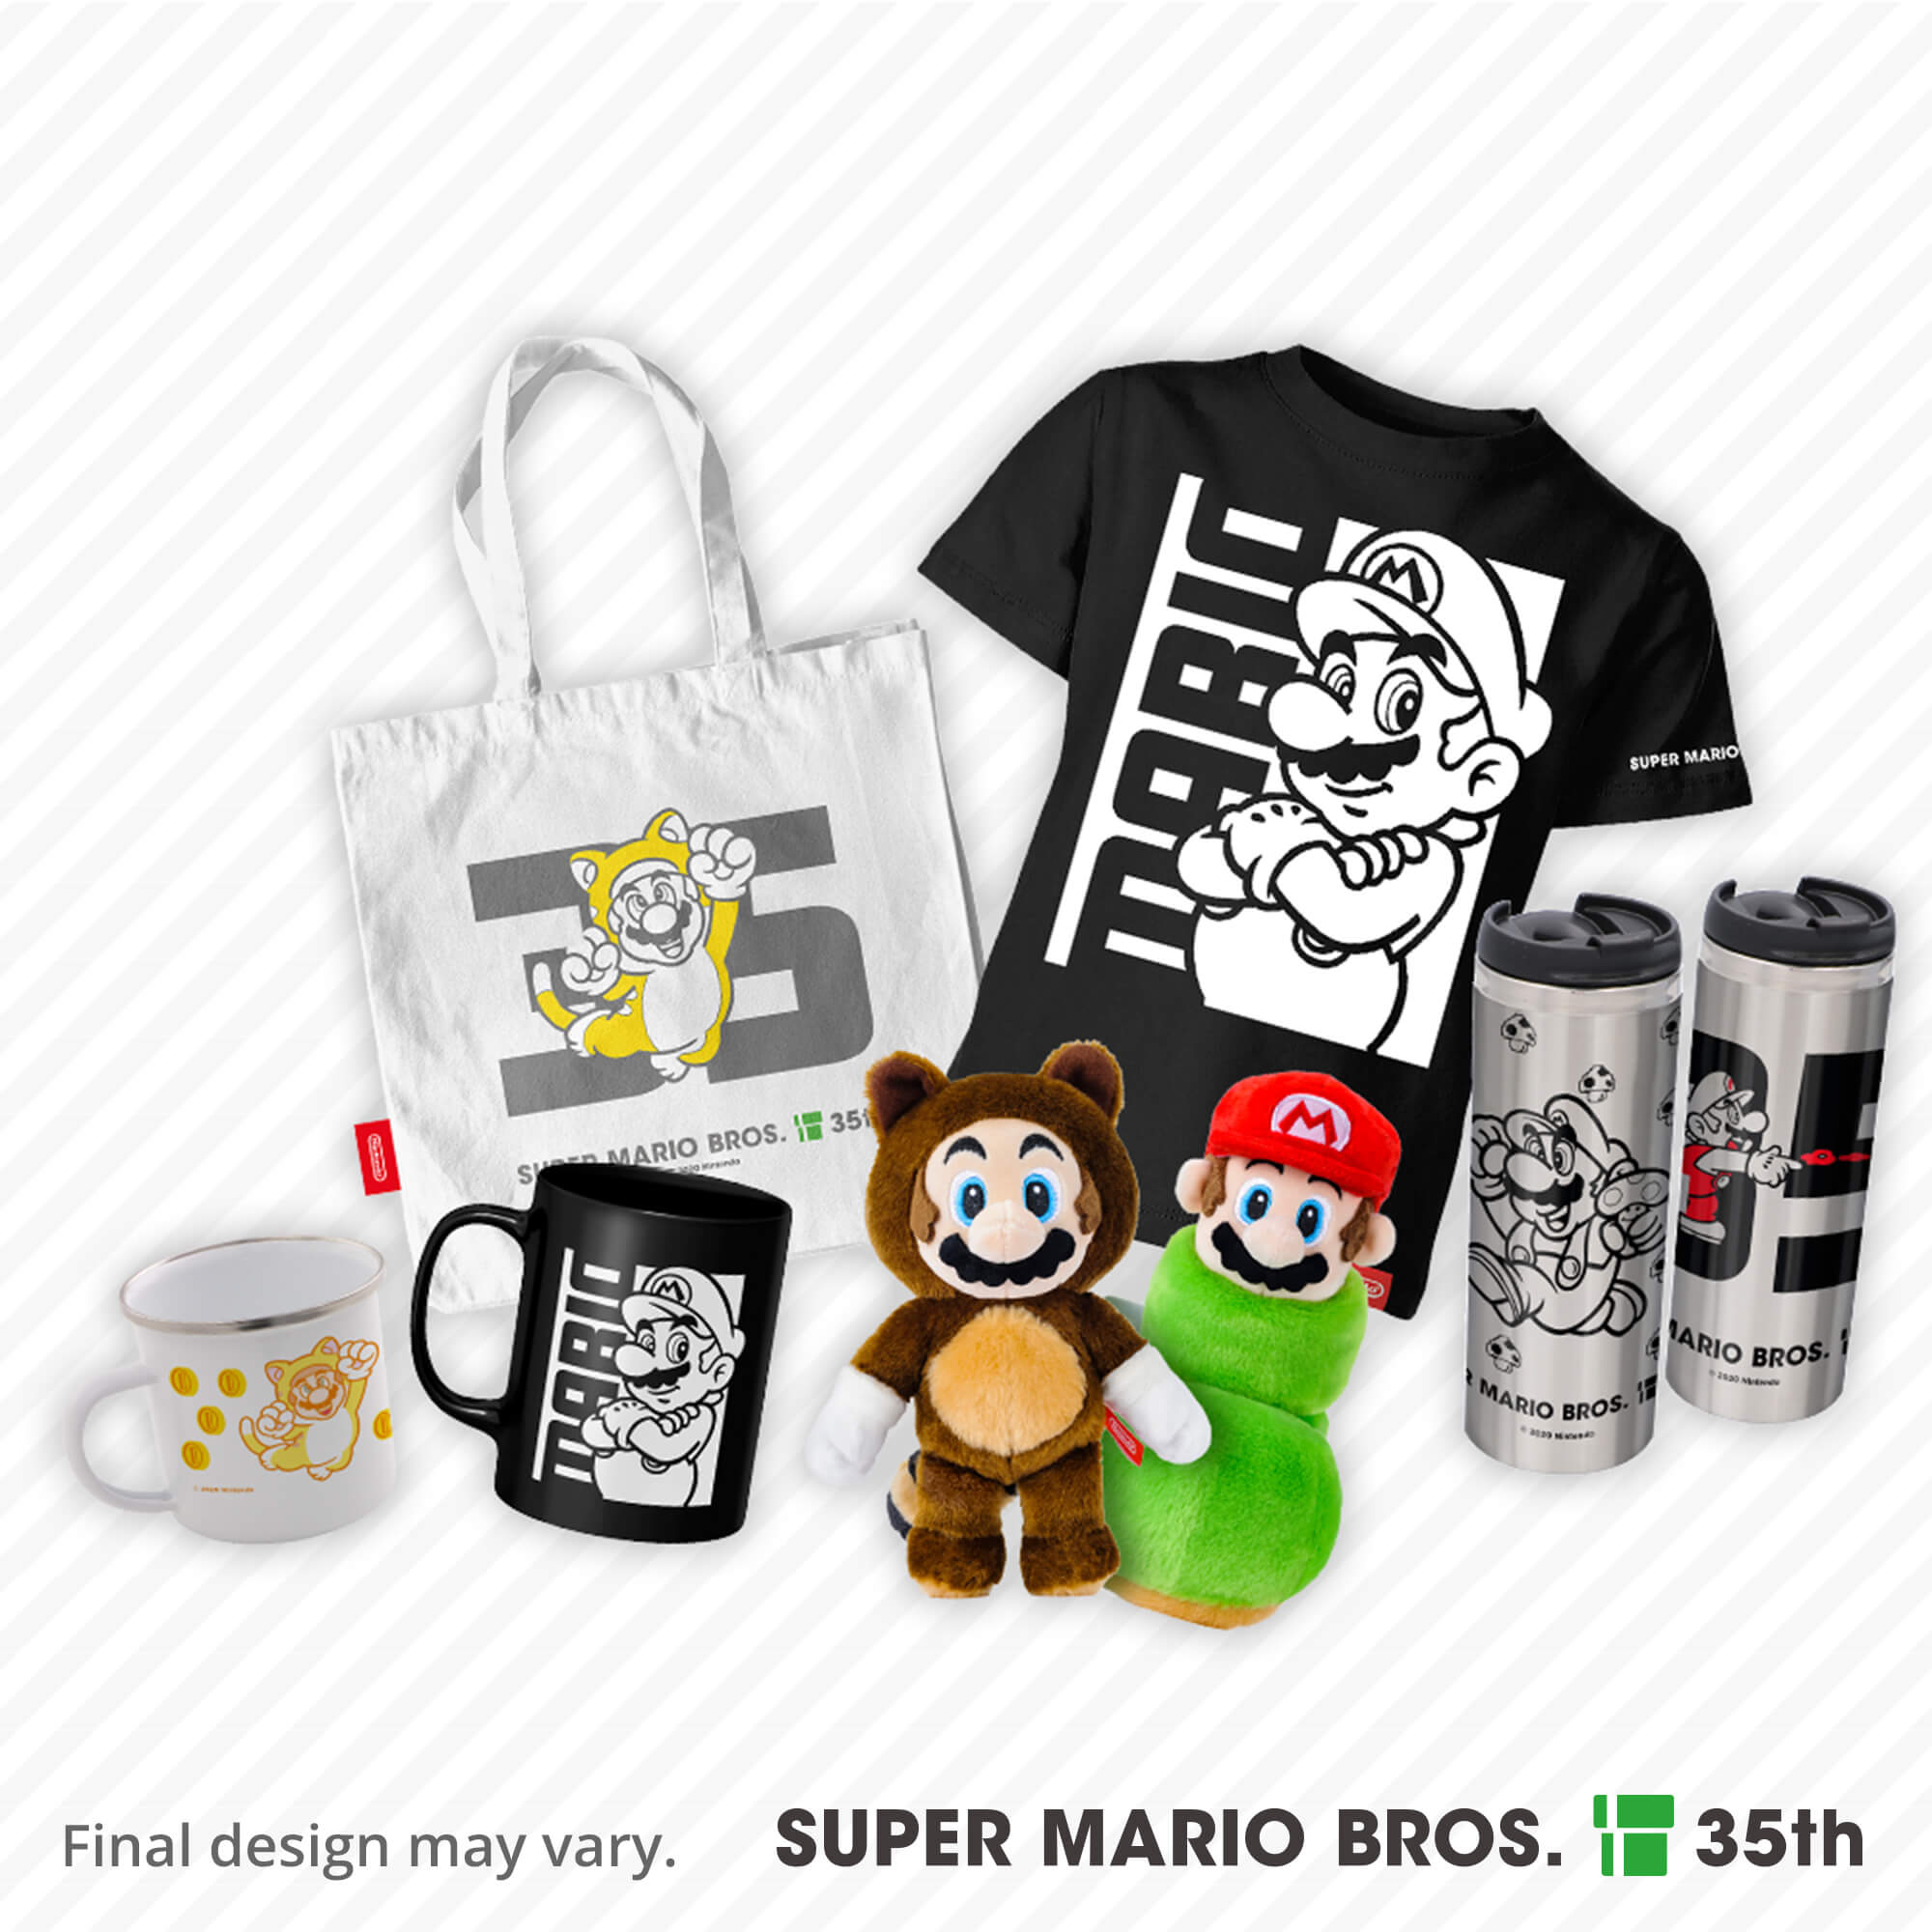 Super Mario Bros. 35th Anniversary merchandise